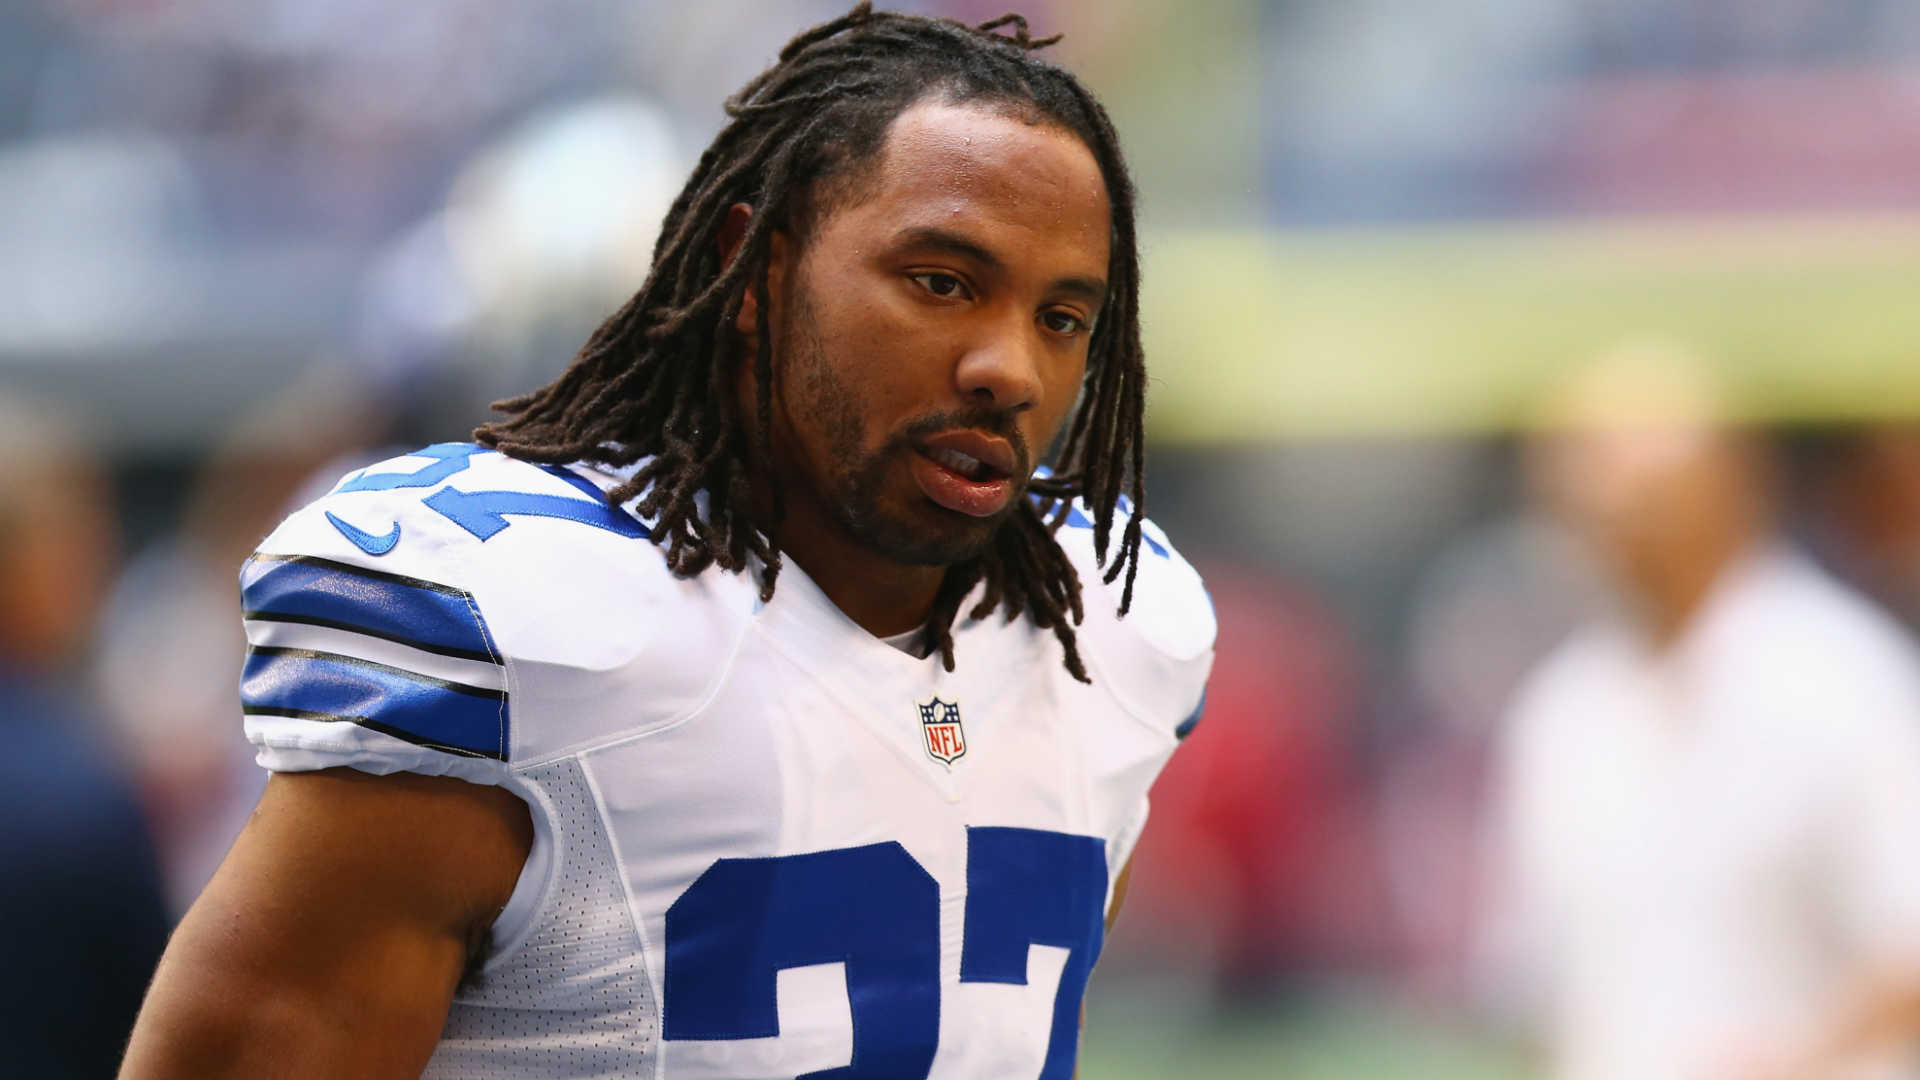 Former Cowboy C.J. Spillman is indicted in Texas for sexual assault